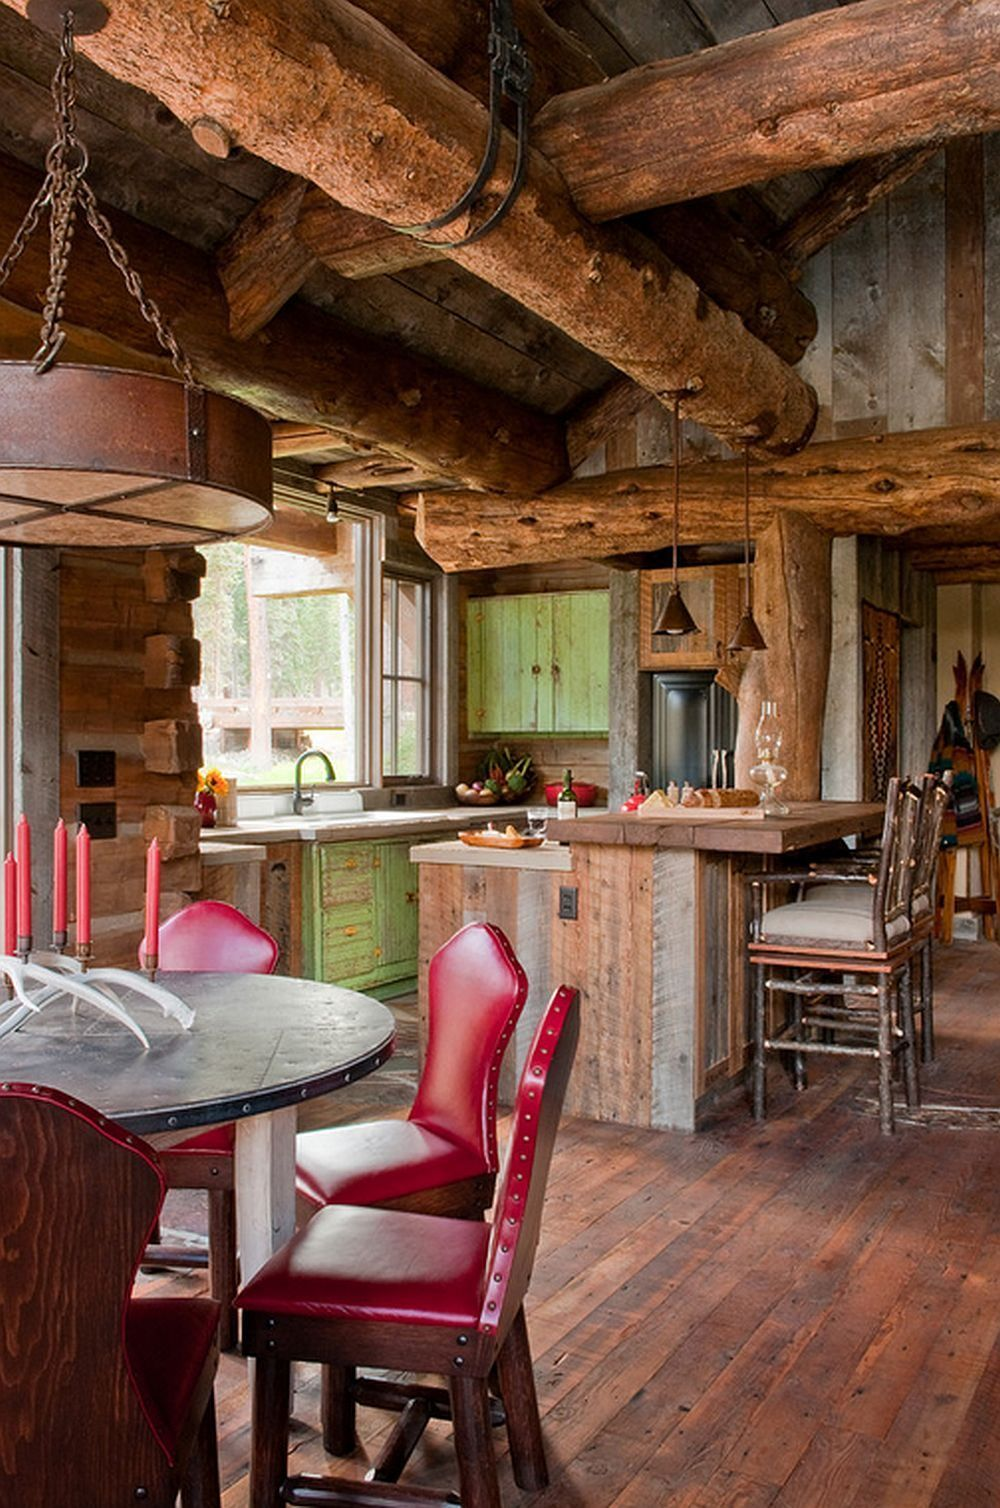 headwaters camp rustic kitchen and dining room with colorful